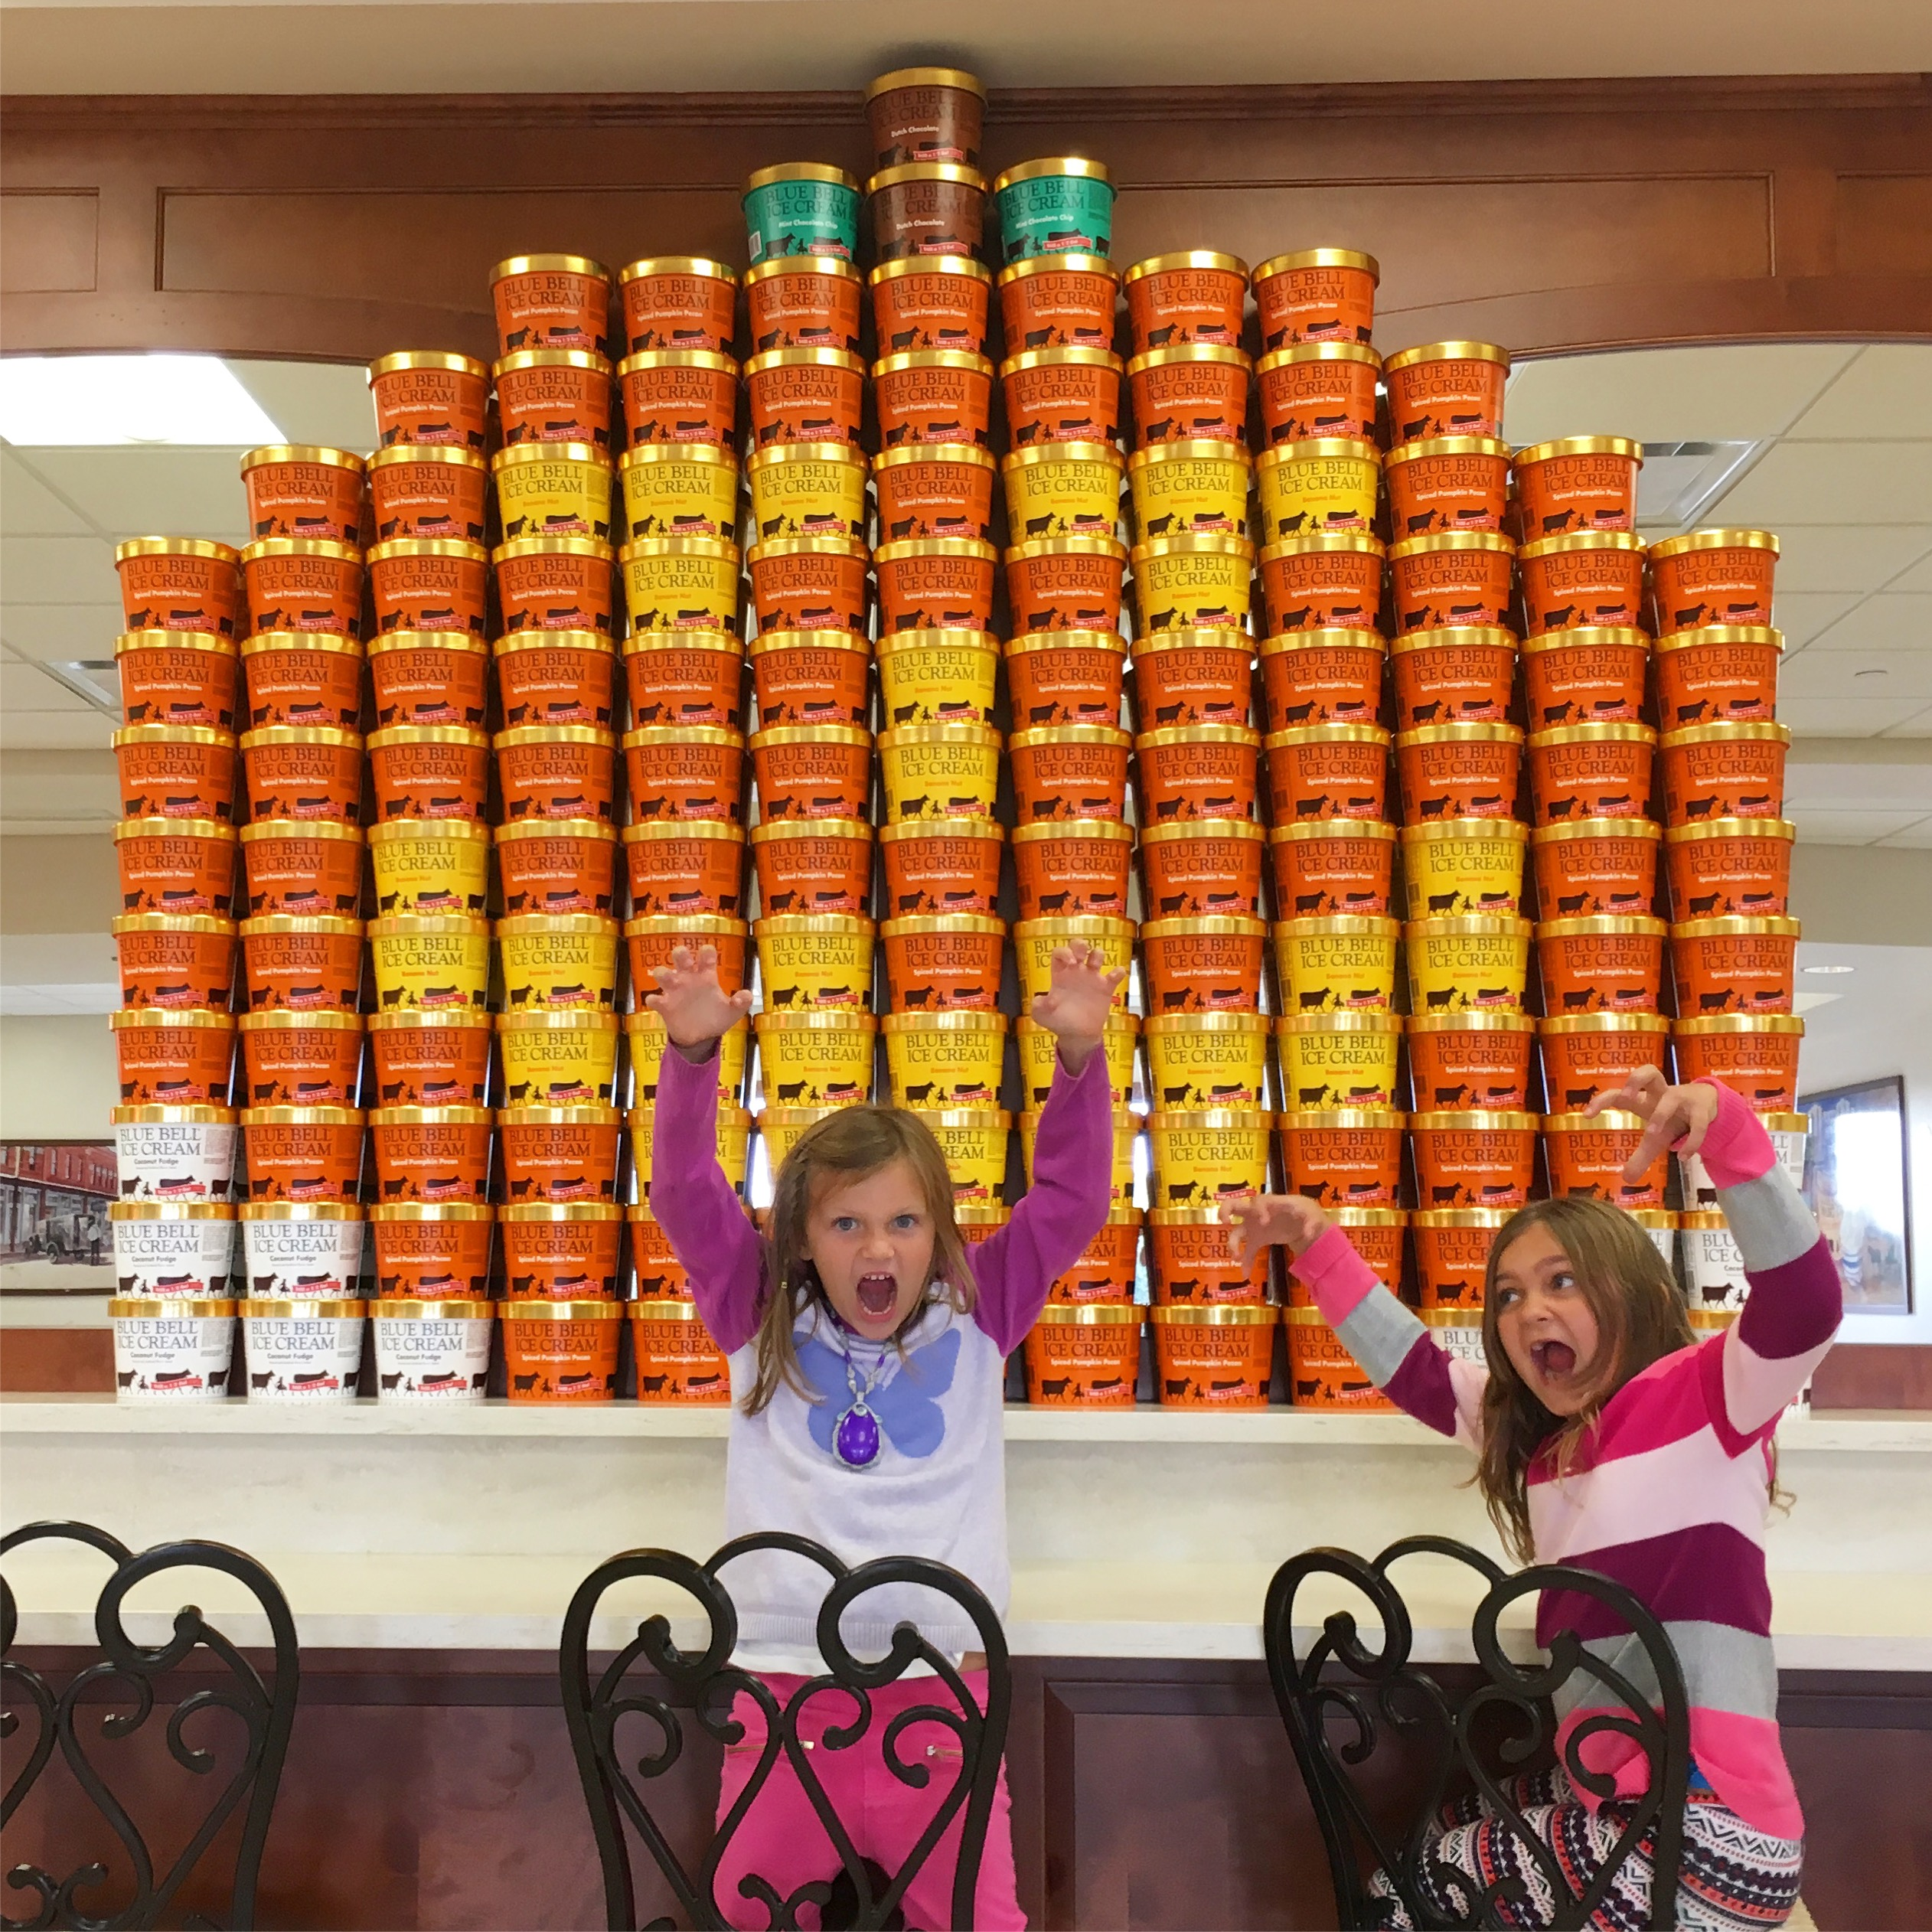 two blonde girls wearing bright sweaters and making faces in front of a display of ice cream half gallons that form a jack o'lantern